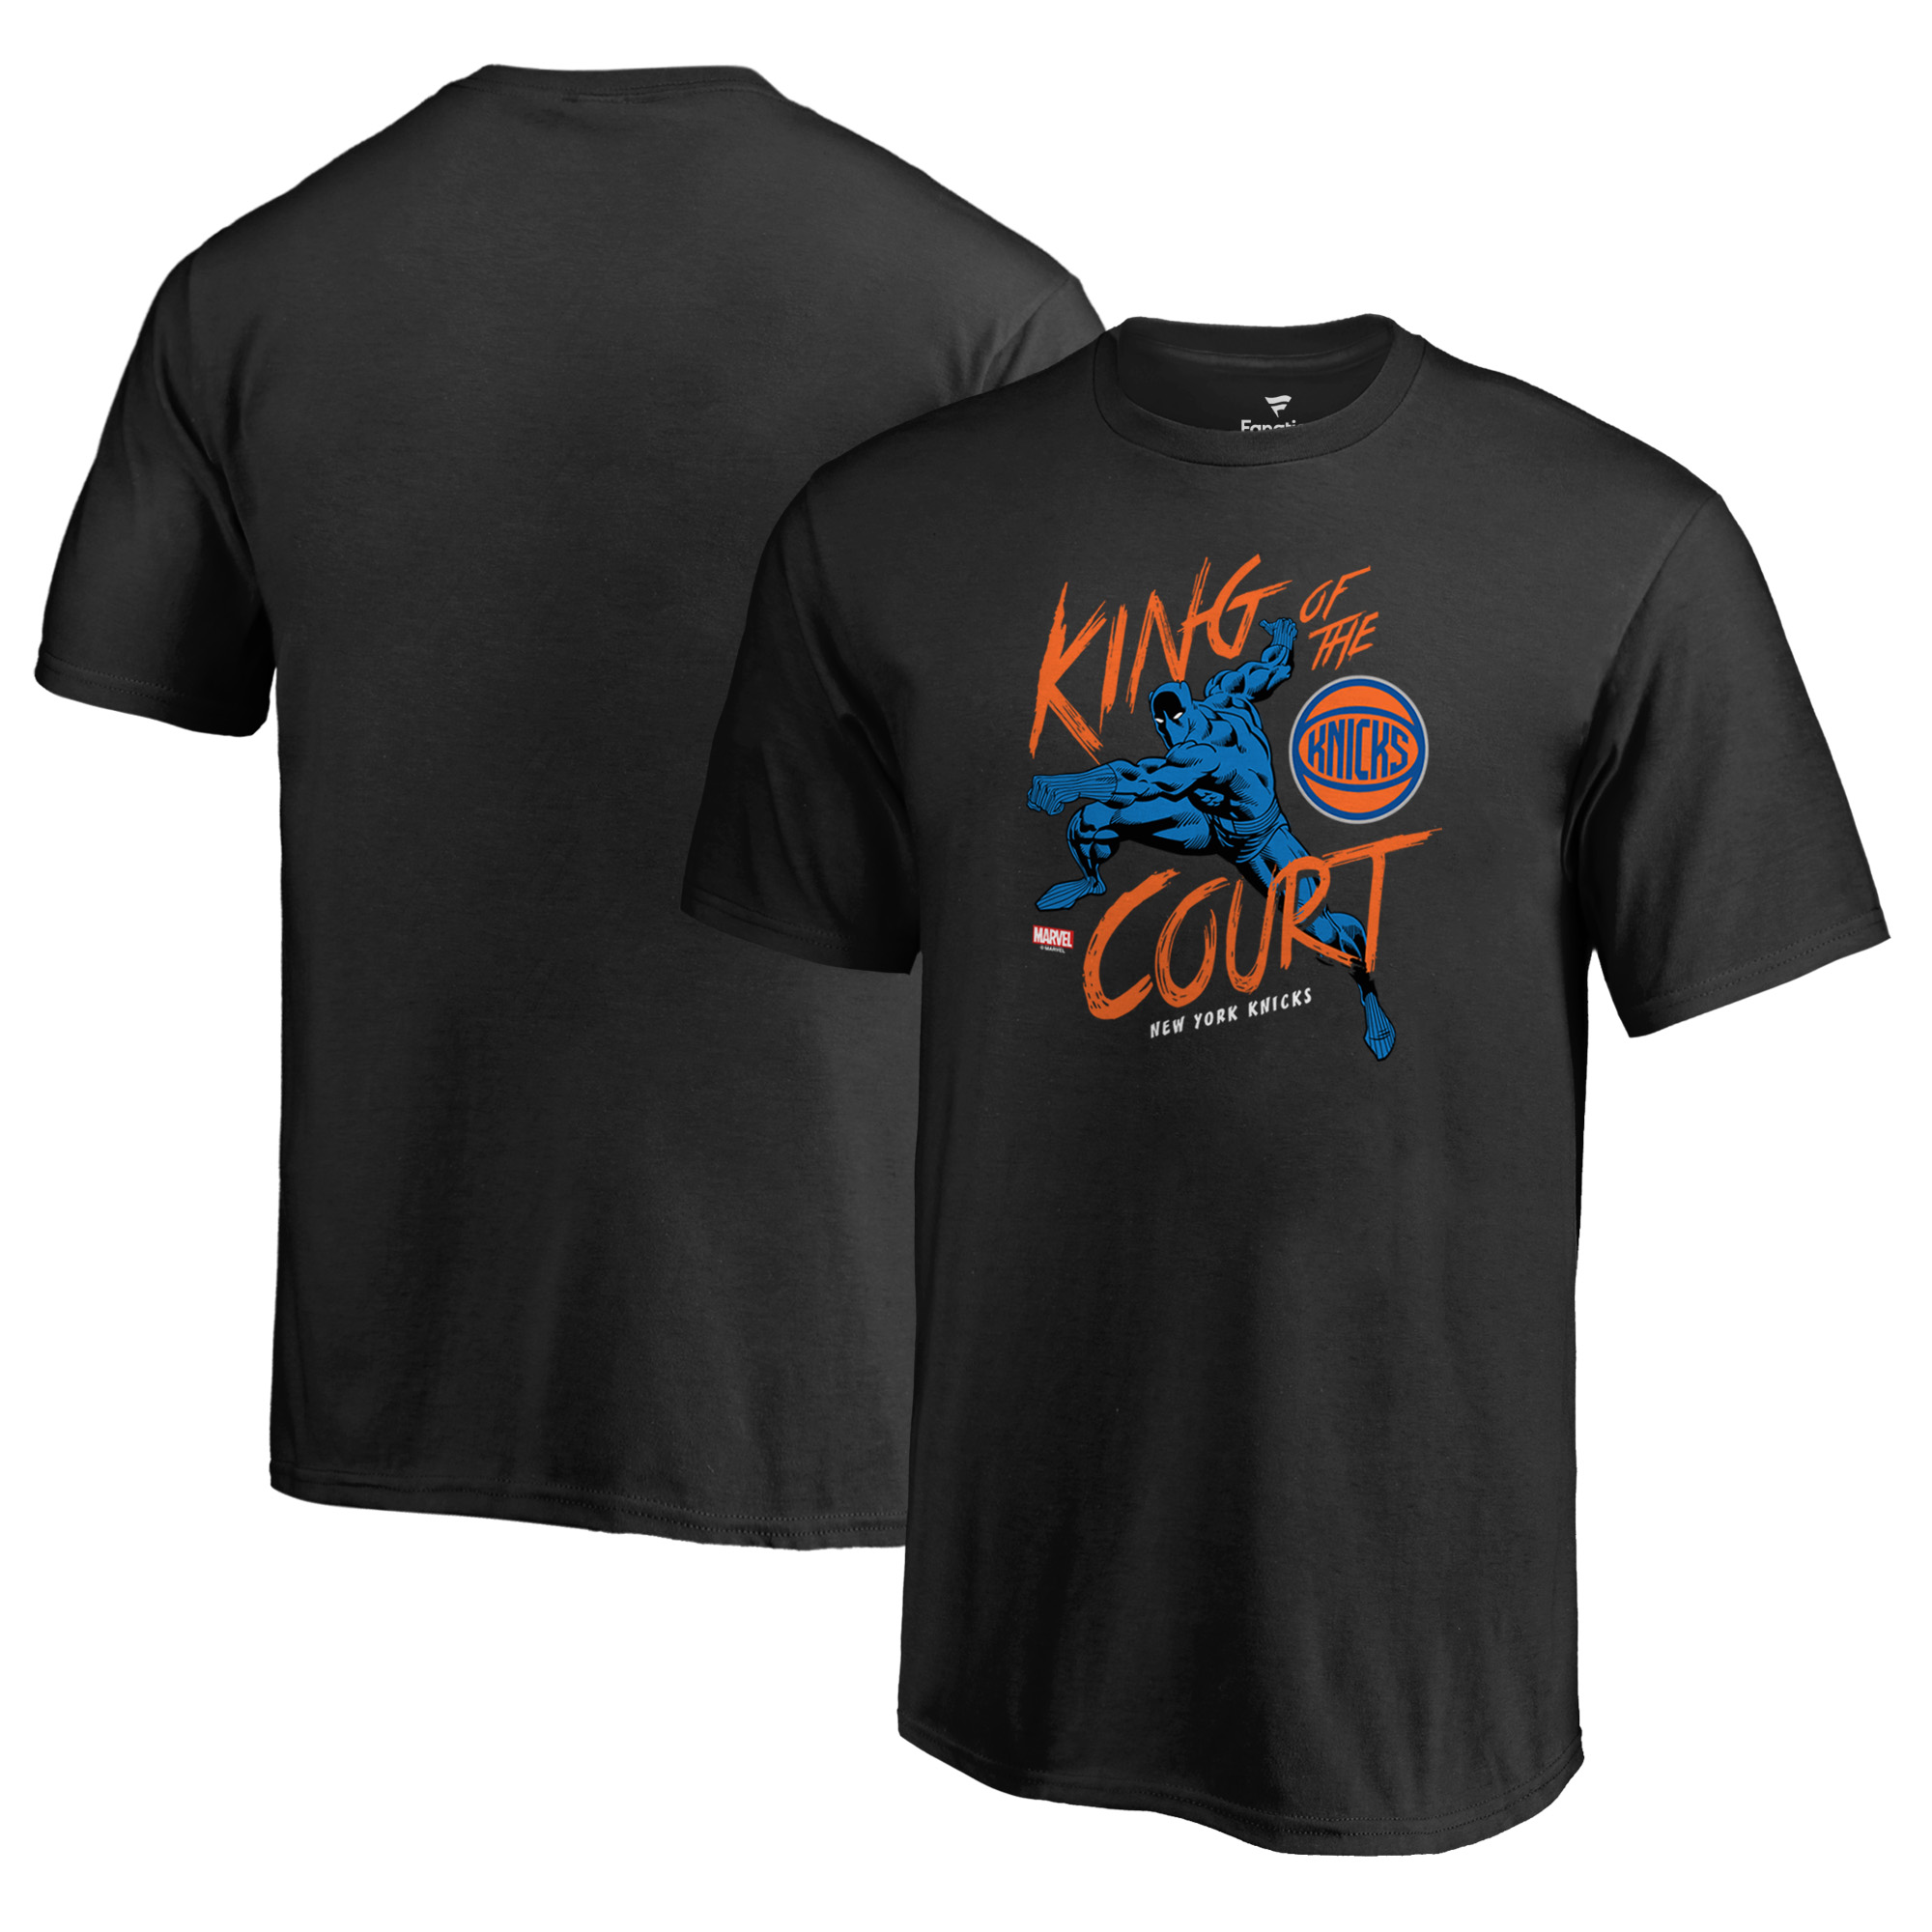 New York Knicks Fanatics Branded Youth Marvel Black Panther King of the Court T-Shirt - Black